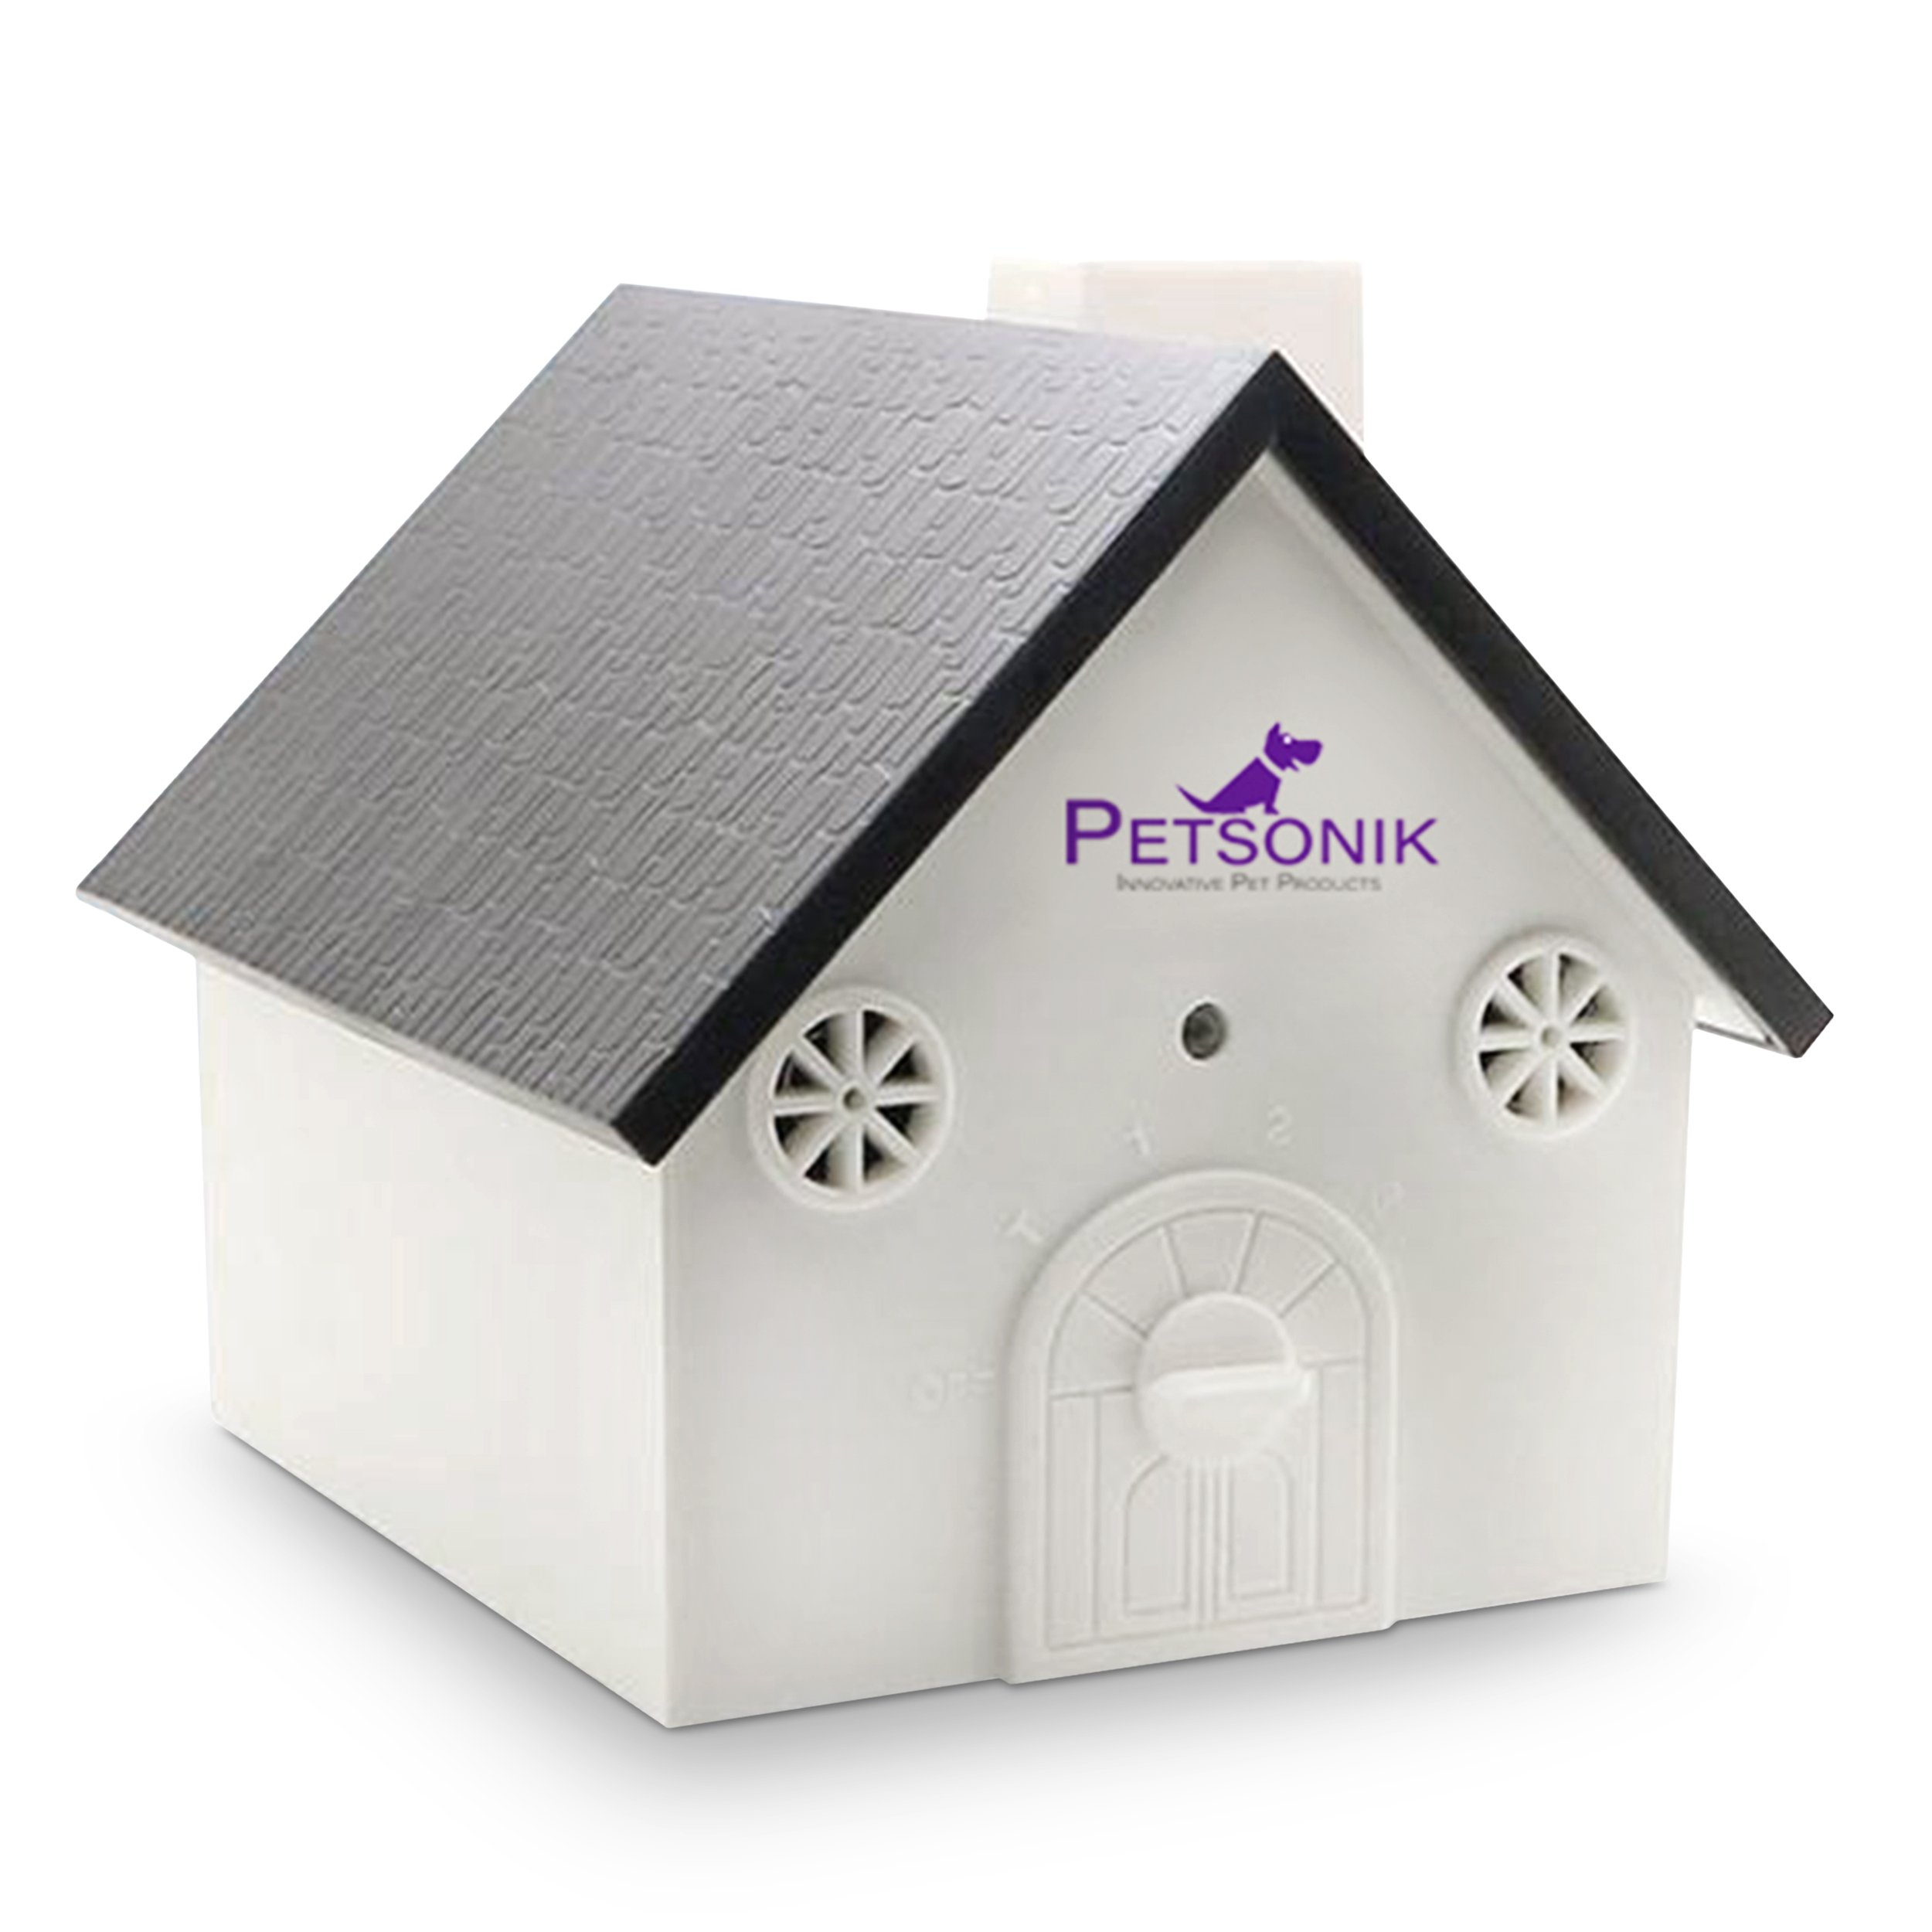 PETSONIK Ultrasonic Outdoor Dog Bark Controller Sonic Bark Deterrent in Newest Birdhouse Shape, No Harm to Dog or other Pets, Plant, Human, Easy Hanging / Mounting On Tree, Wall, Or Fence Post